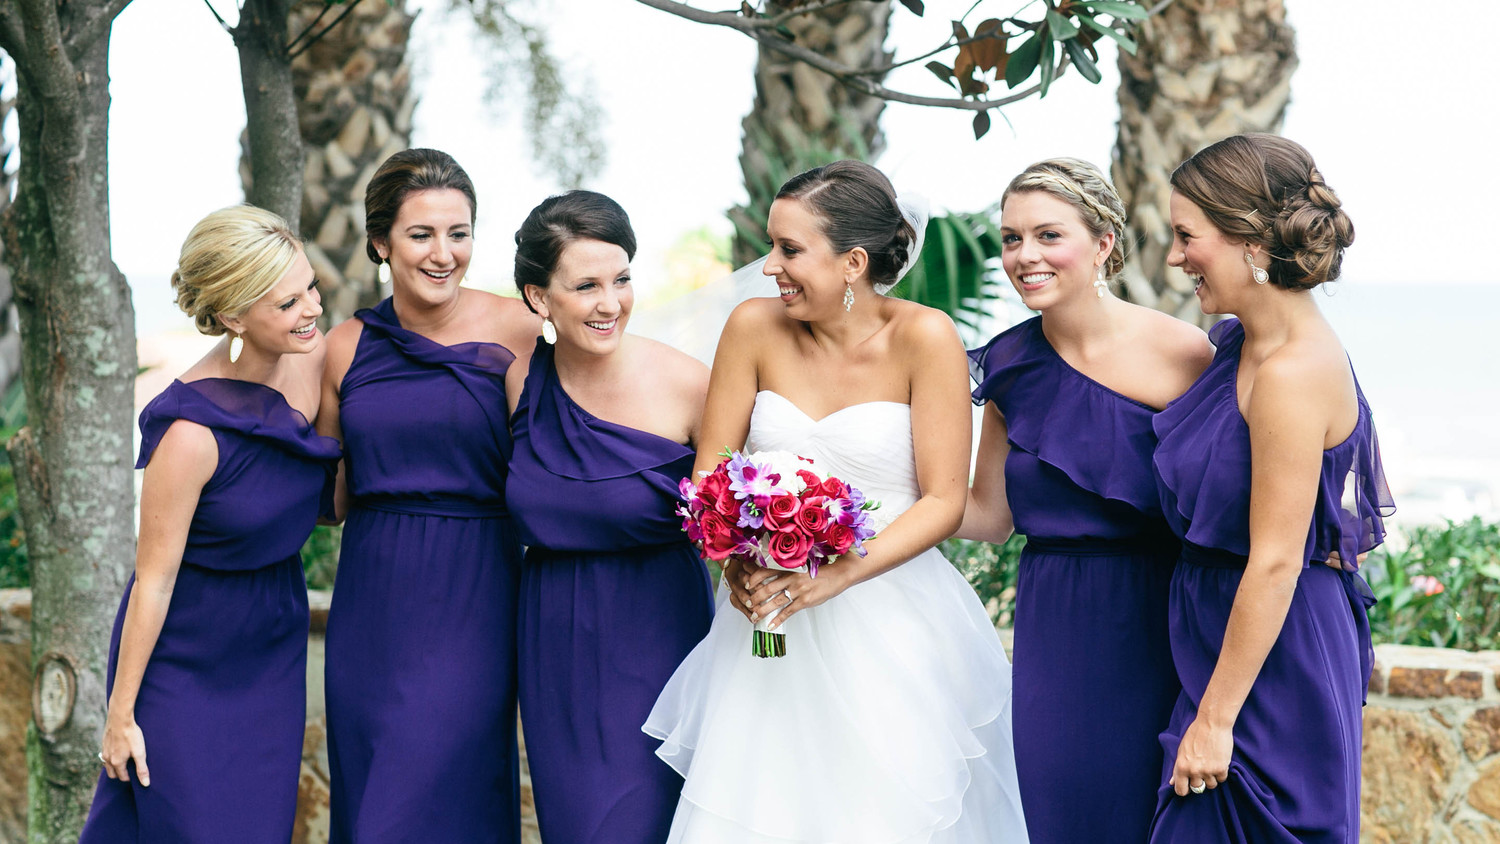 The best bridesmaids dress colors for fall weddings martha the best bridesmaids dress colors for fall weddings martha stewart weddings ombrellifo Gallery